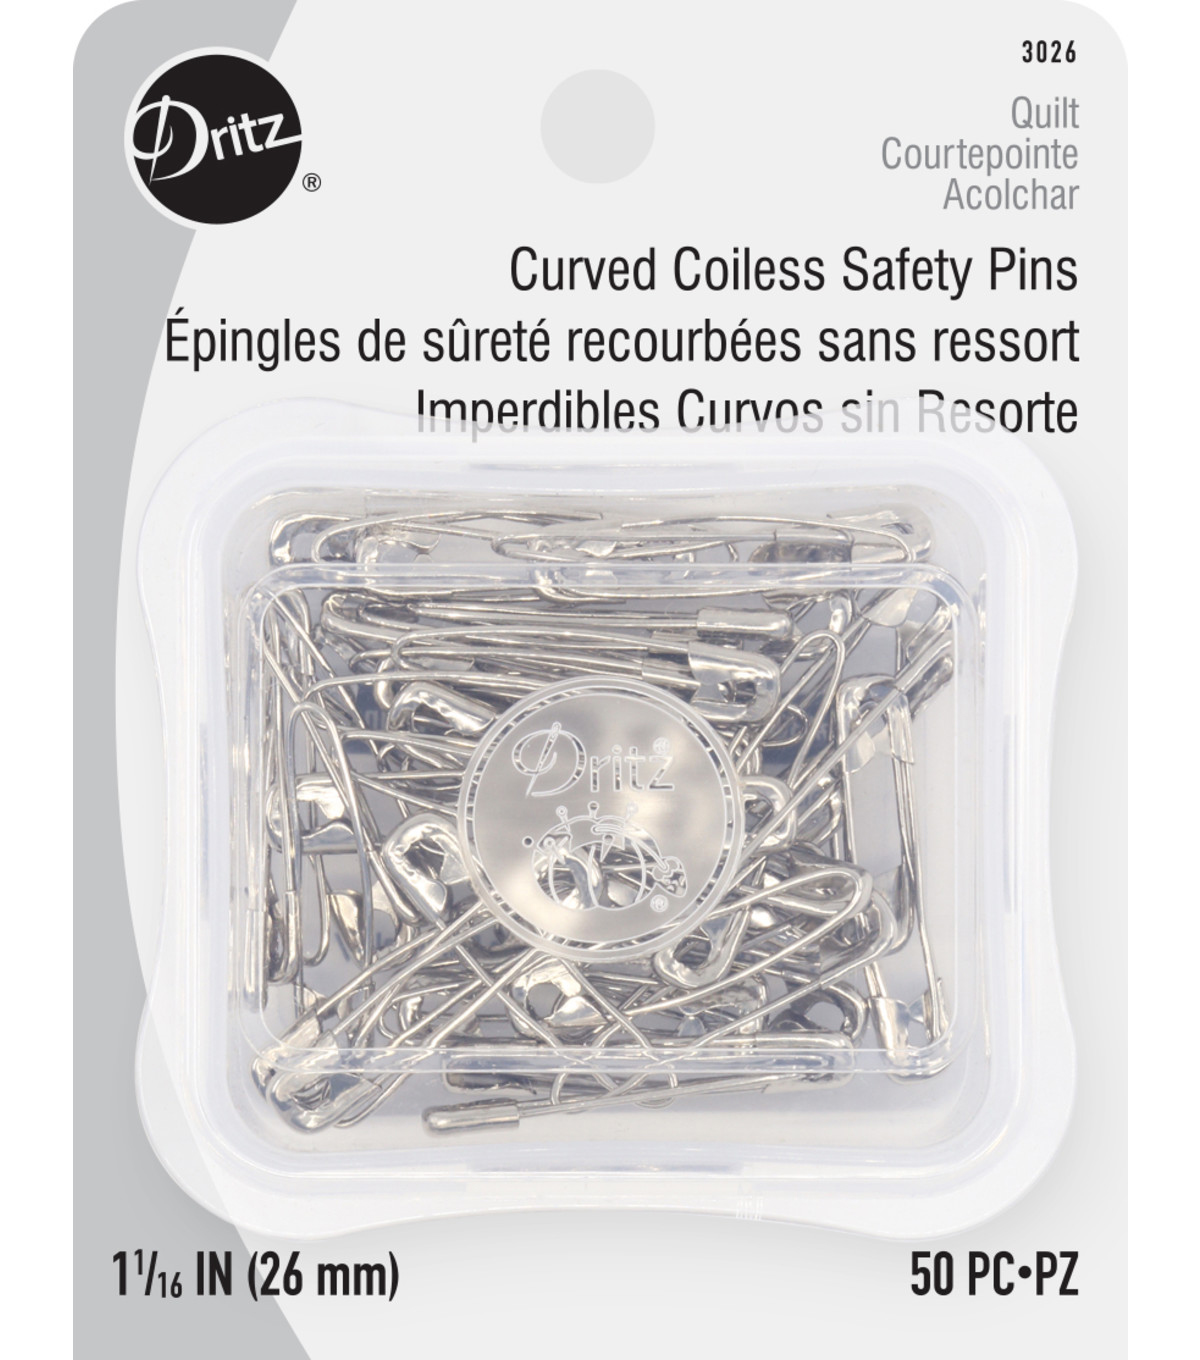 Coil-Less Curved Safety Pin Size 1 50 Ct